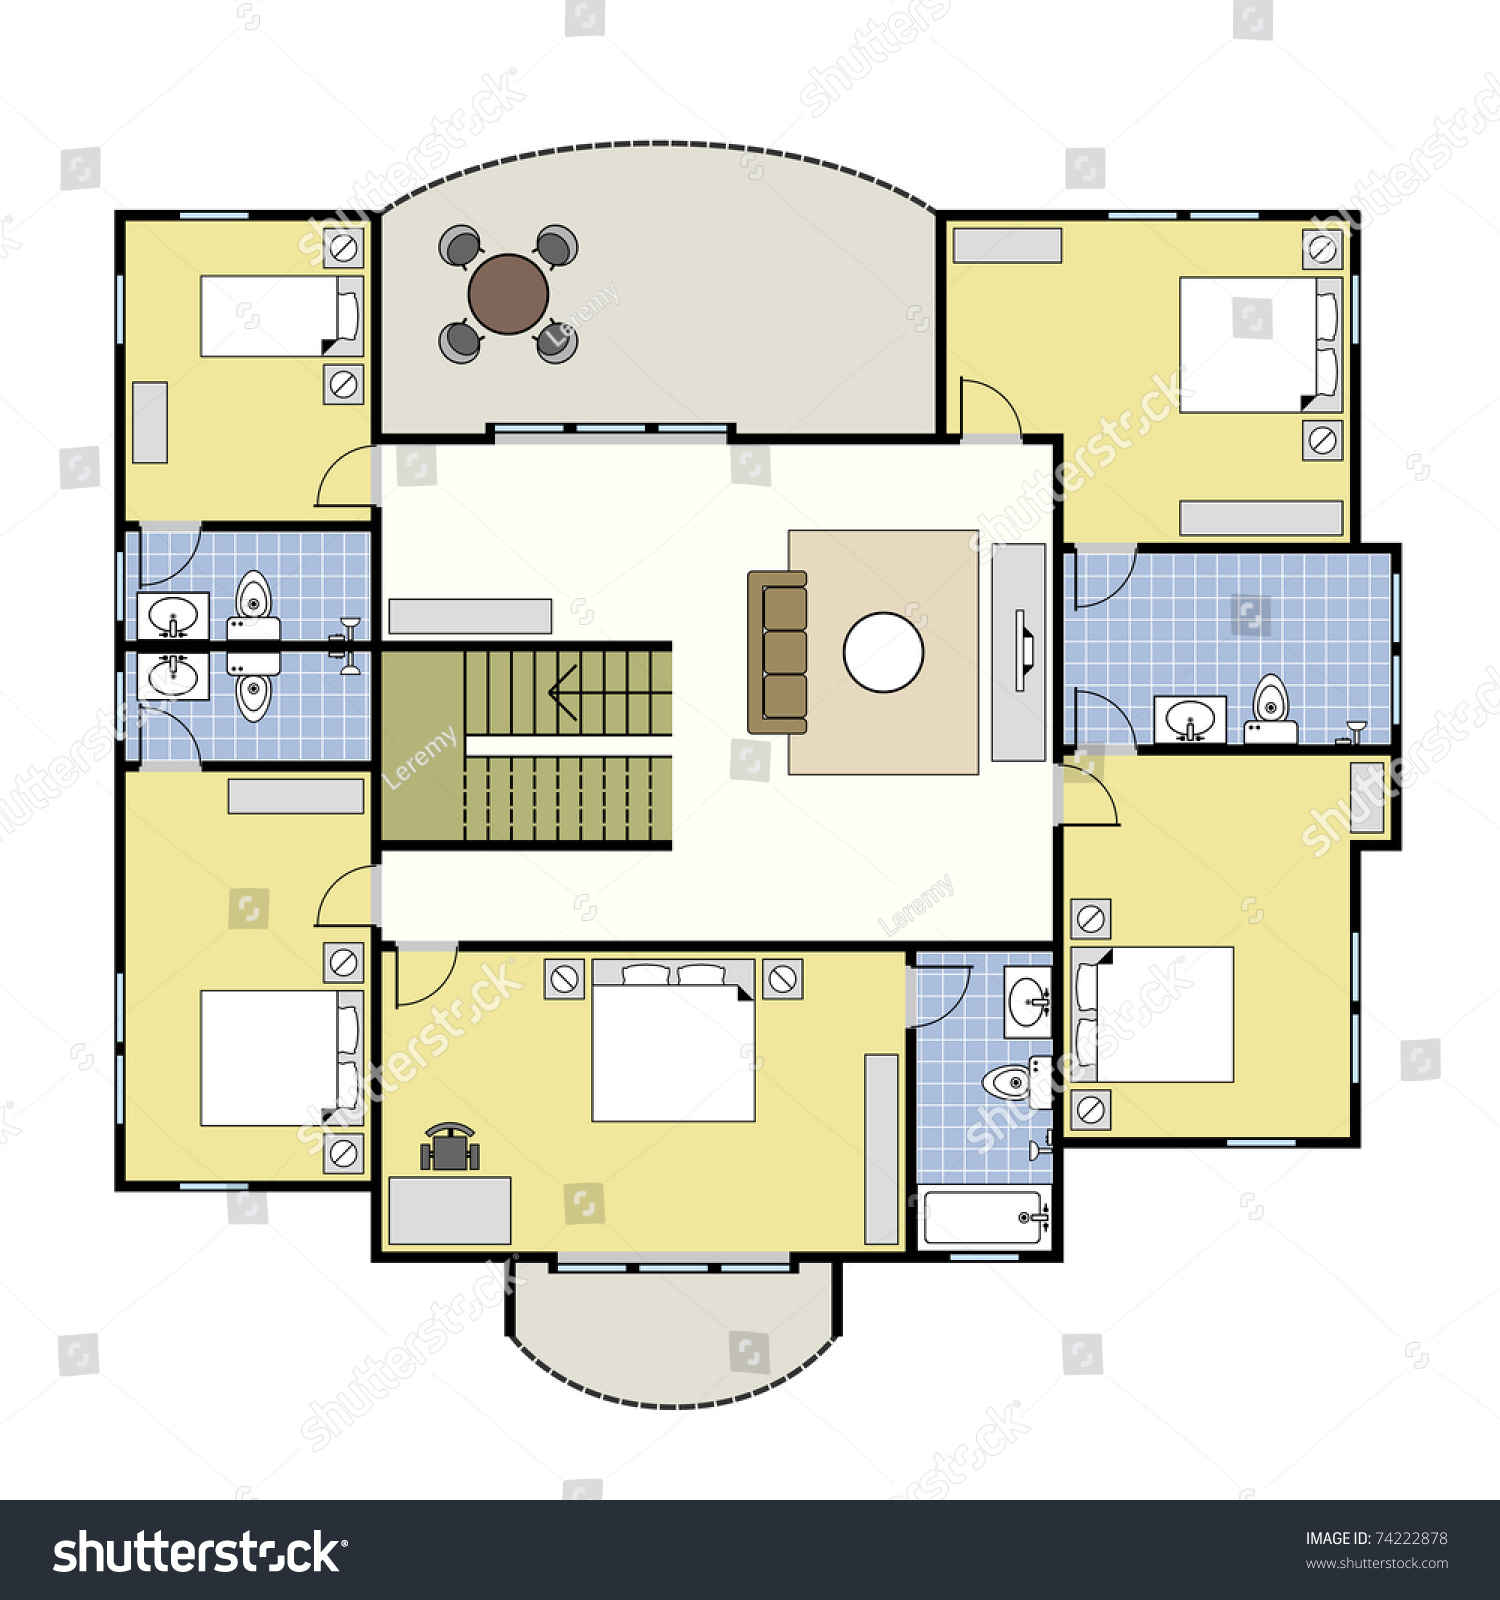 First second floor plan floorplan house home building for Stock home plans